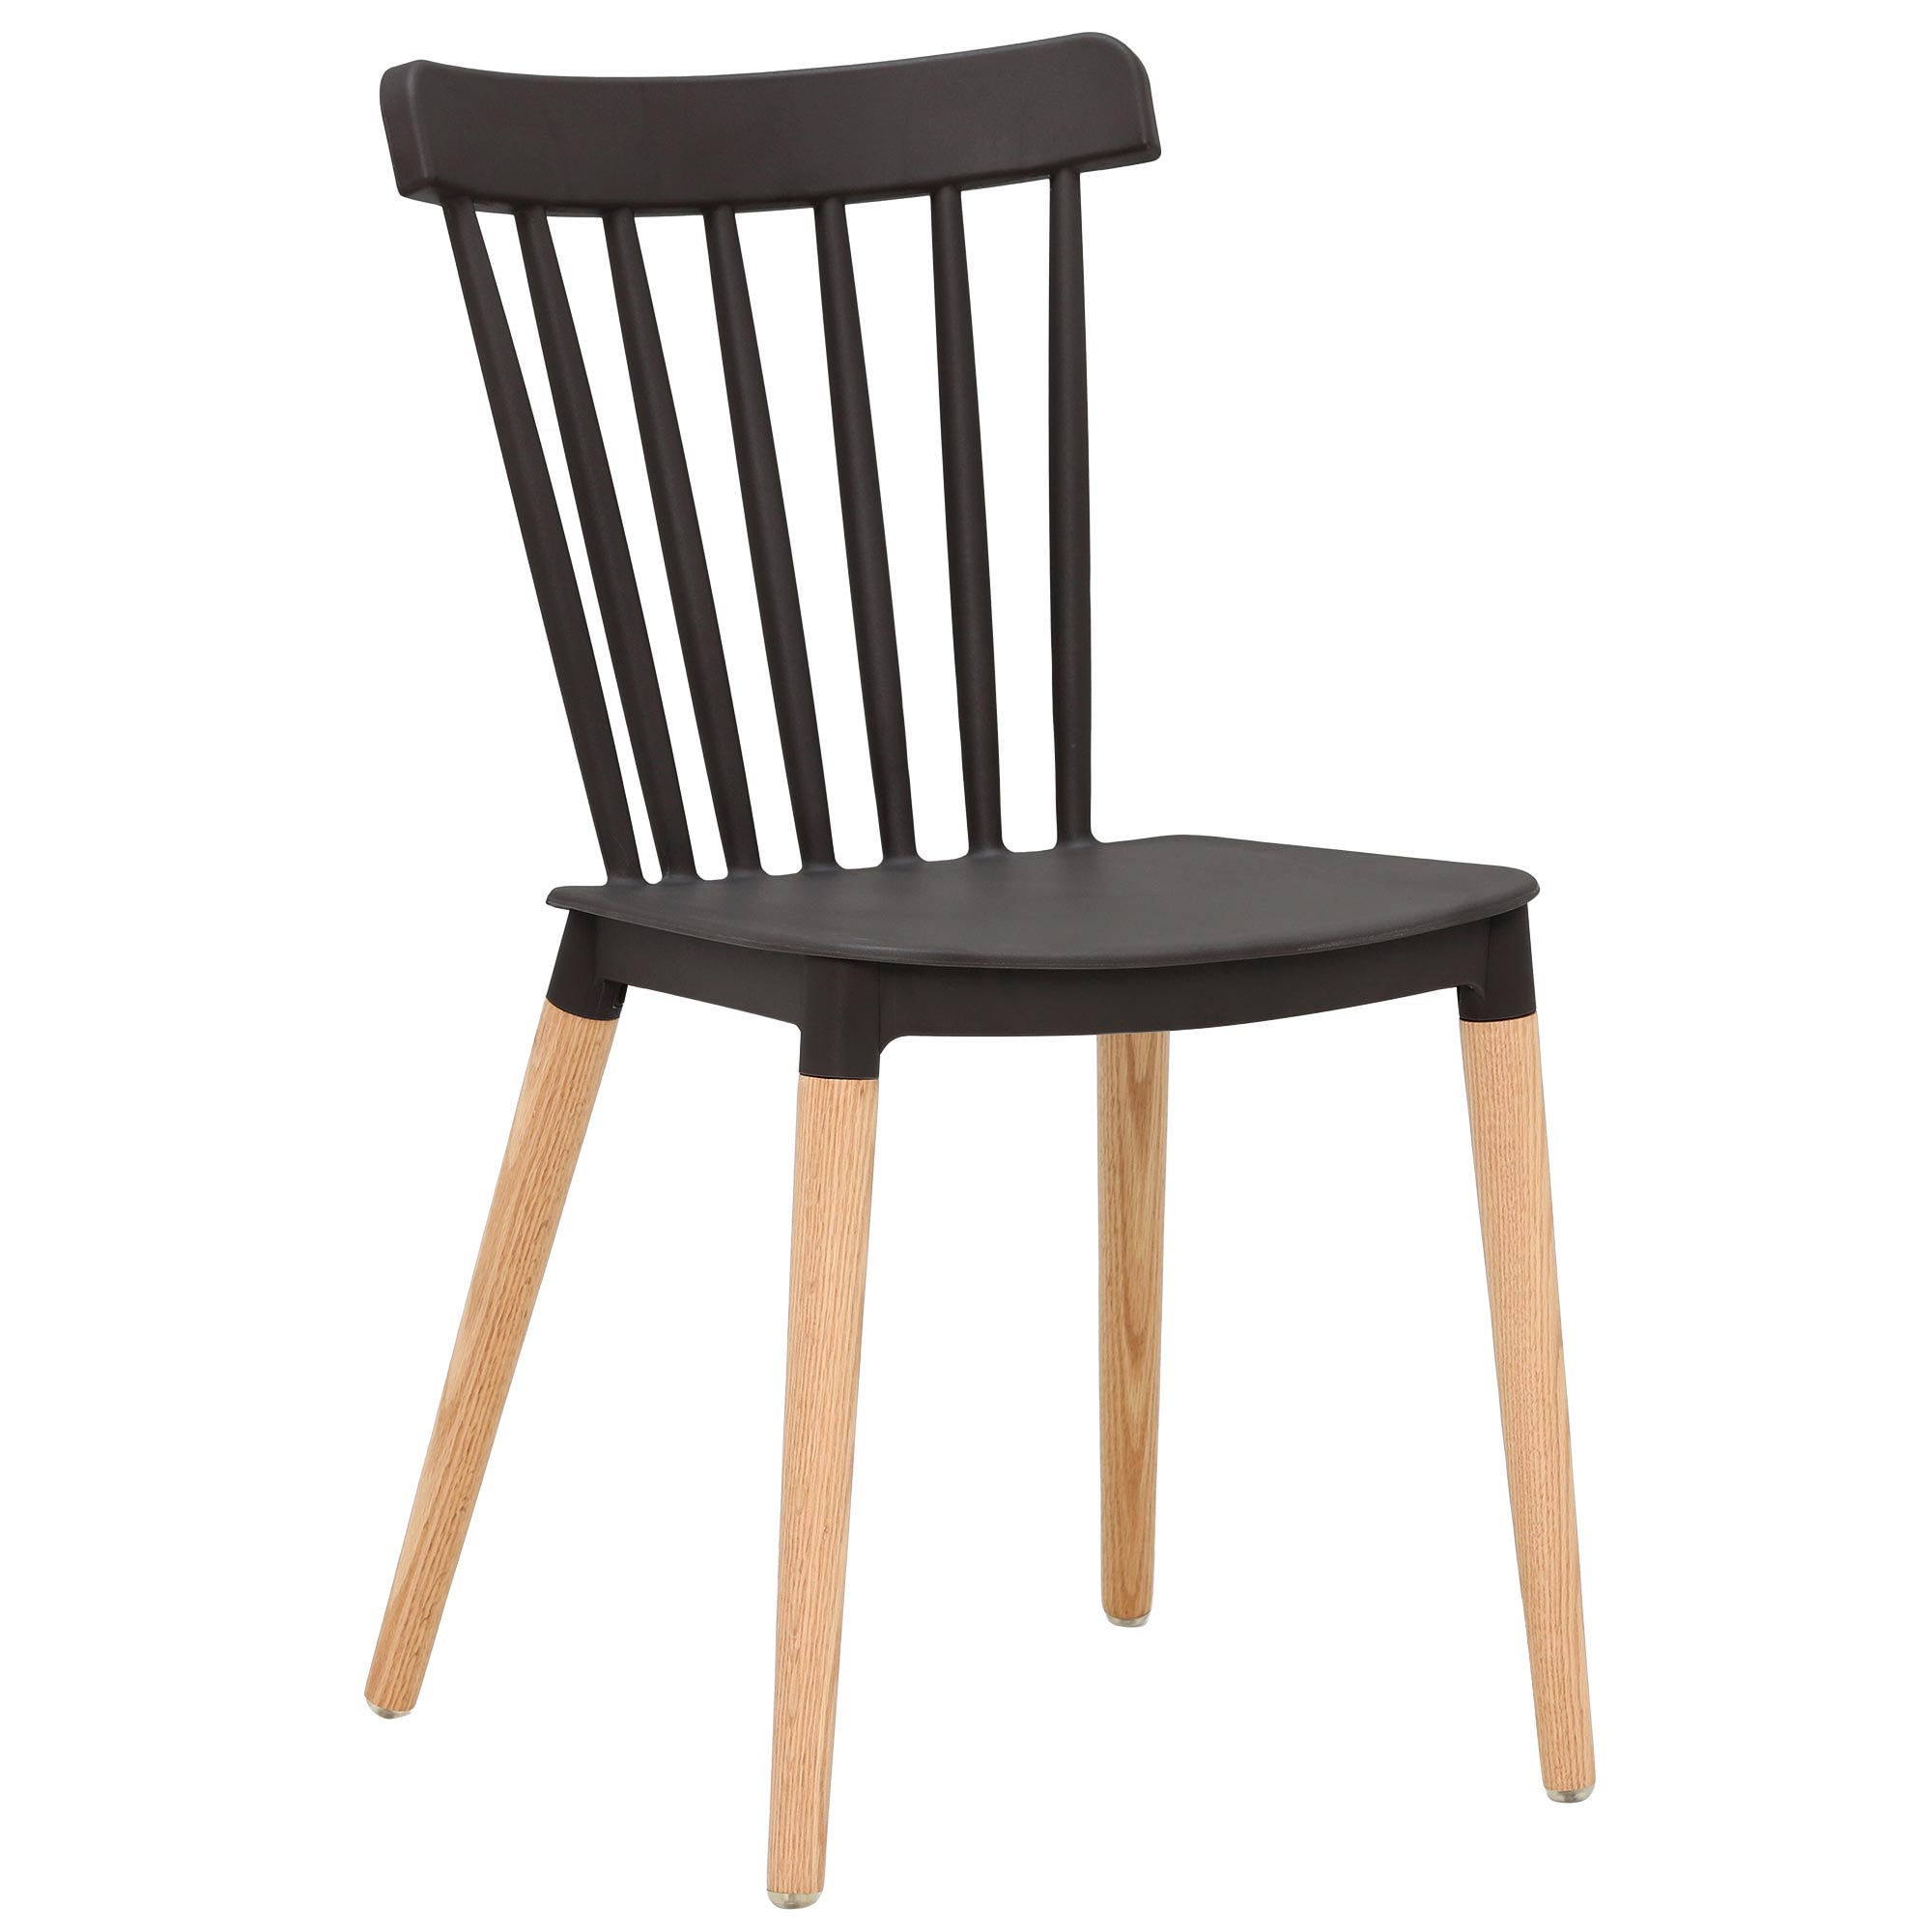 scandinavian design black pp plastic dining chair with solid wood legs